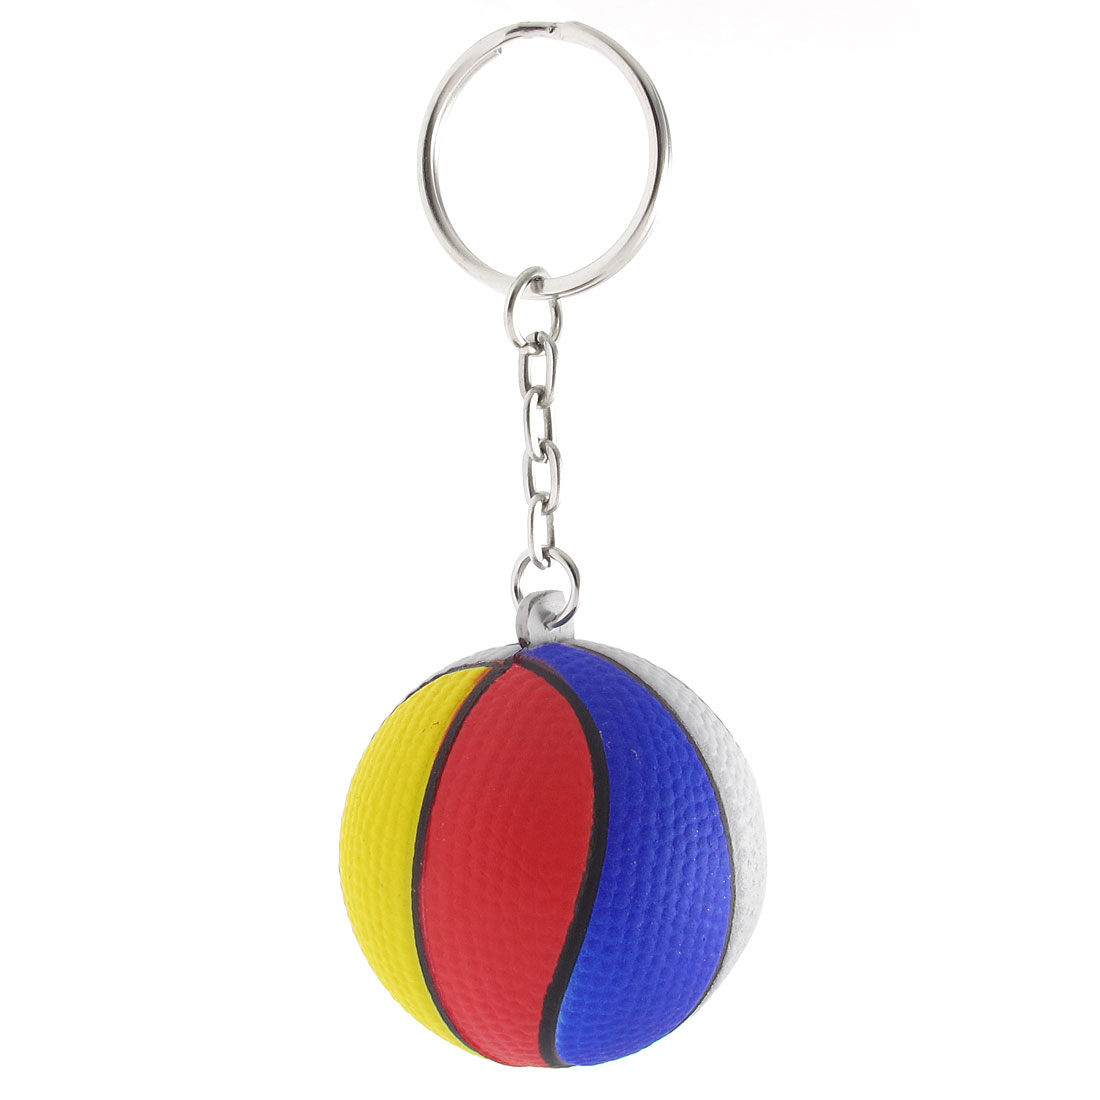 Multicolor Foam Basketball Design Pendant Keychain Key Ring Hanging Ornament